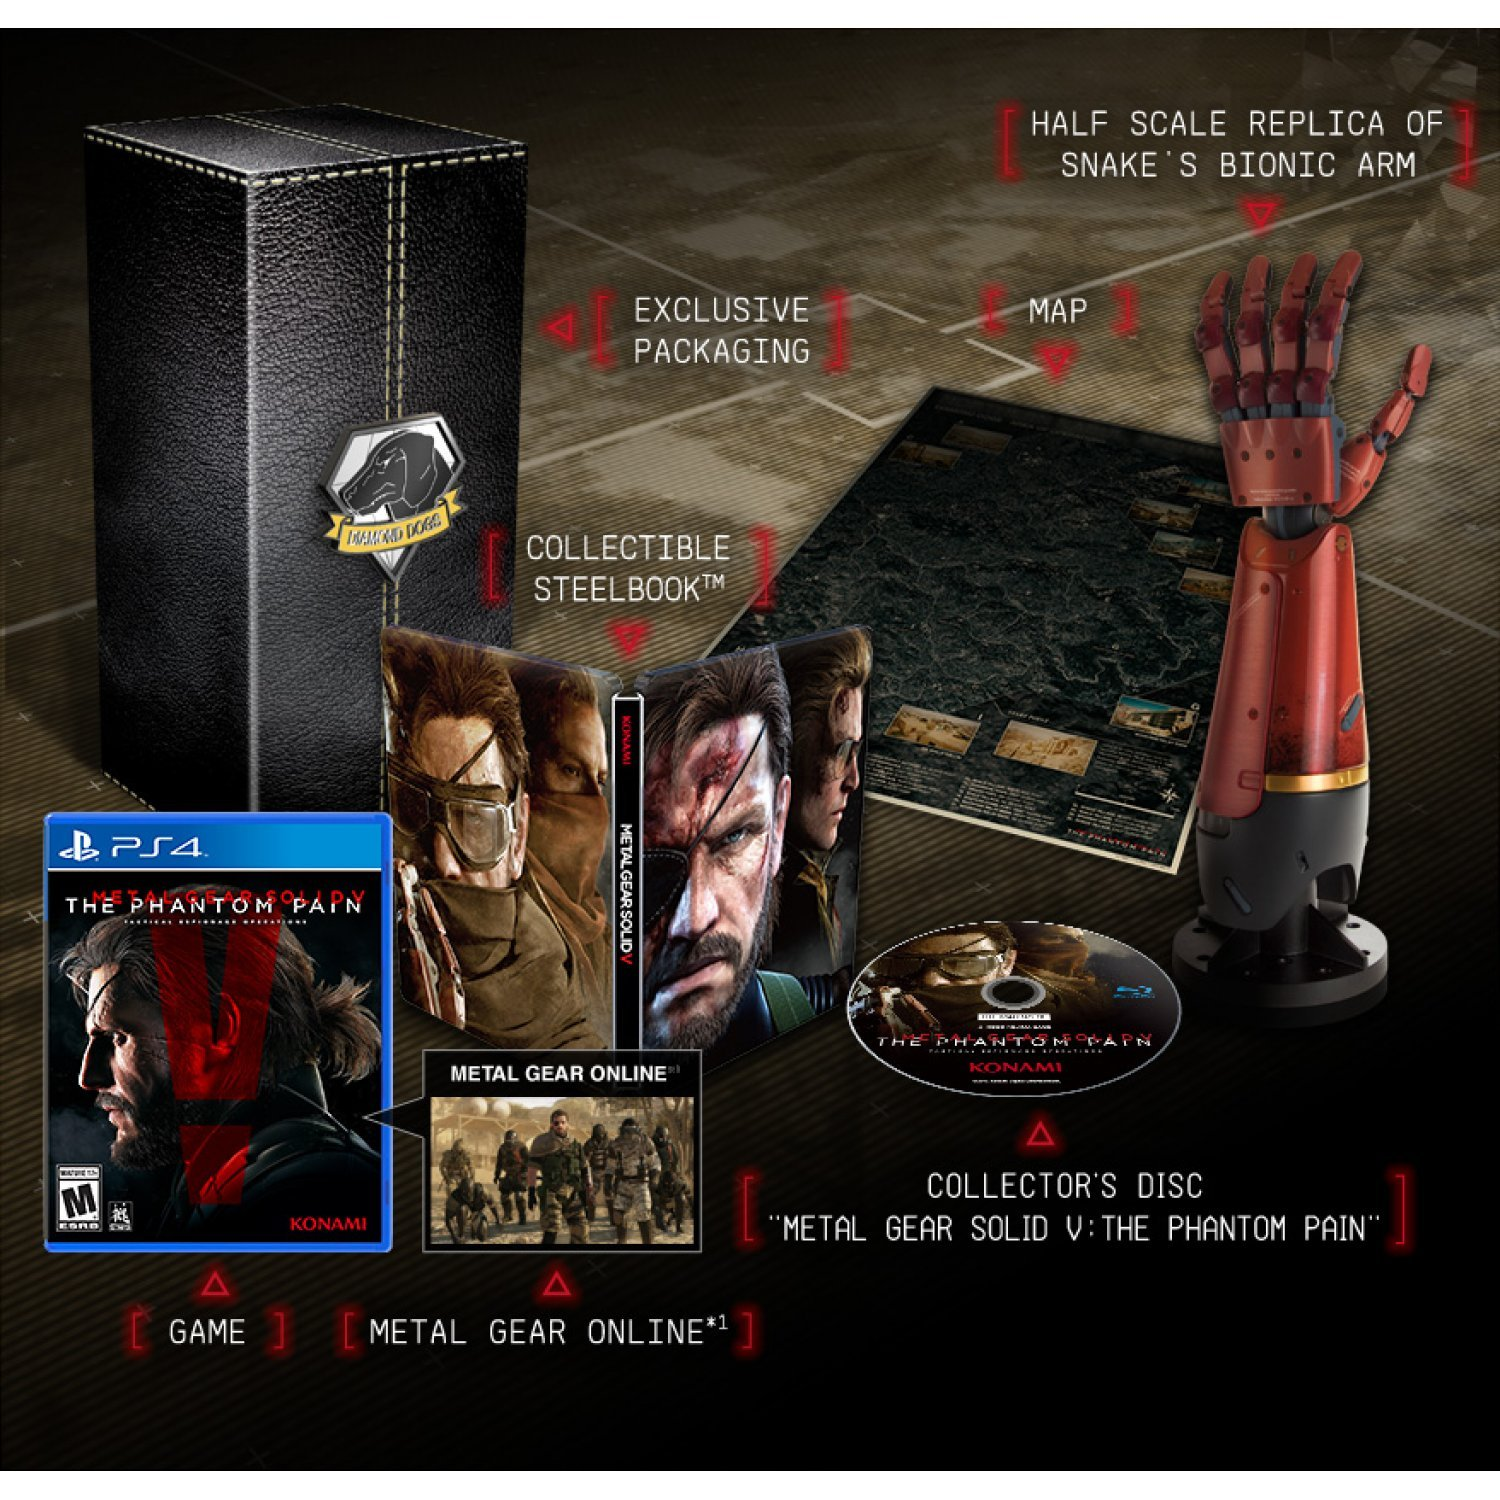 Metal gear solid v: the phantom pain (collector's edition).